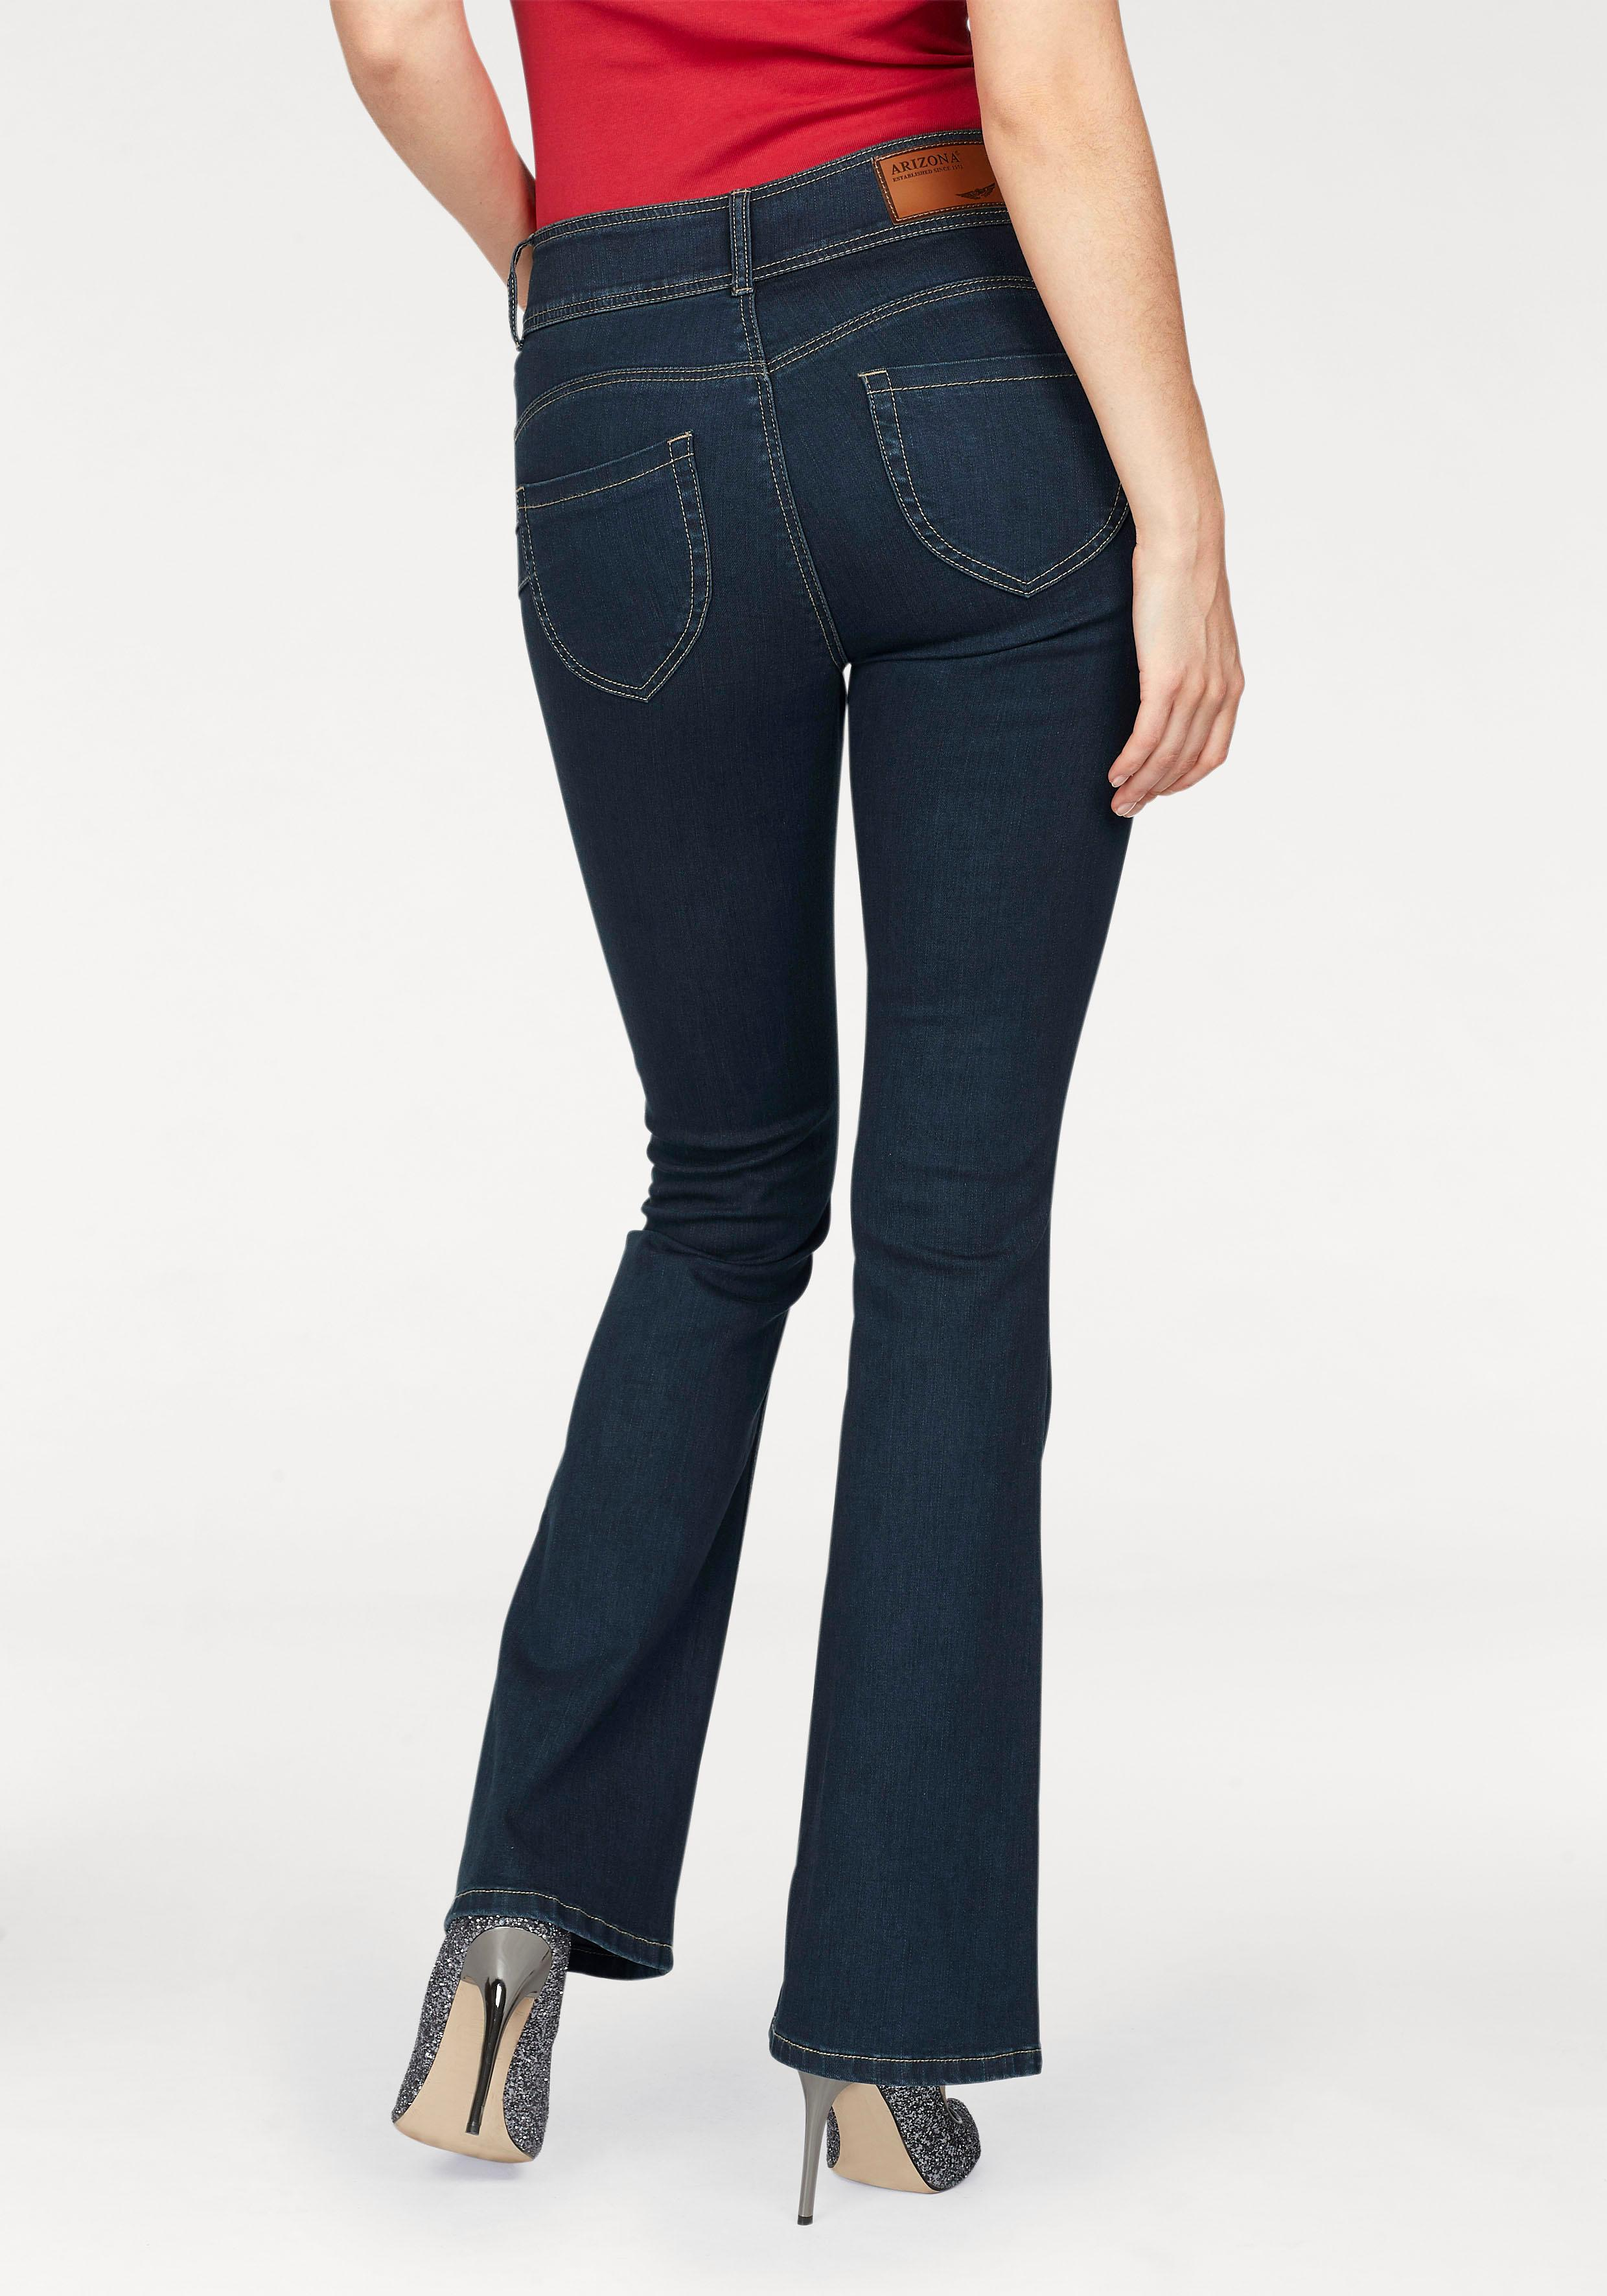 Arizona Bootcut-Jeans Shaping | Bekleidung > Jeans > Bootcut-Jeans & Schlagjeans | Arizona